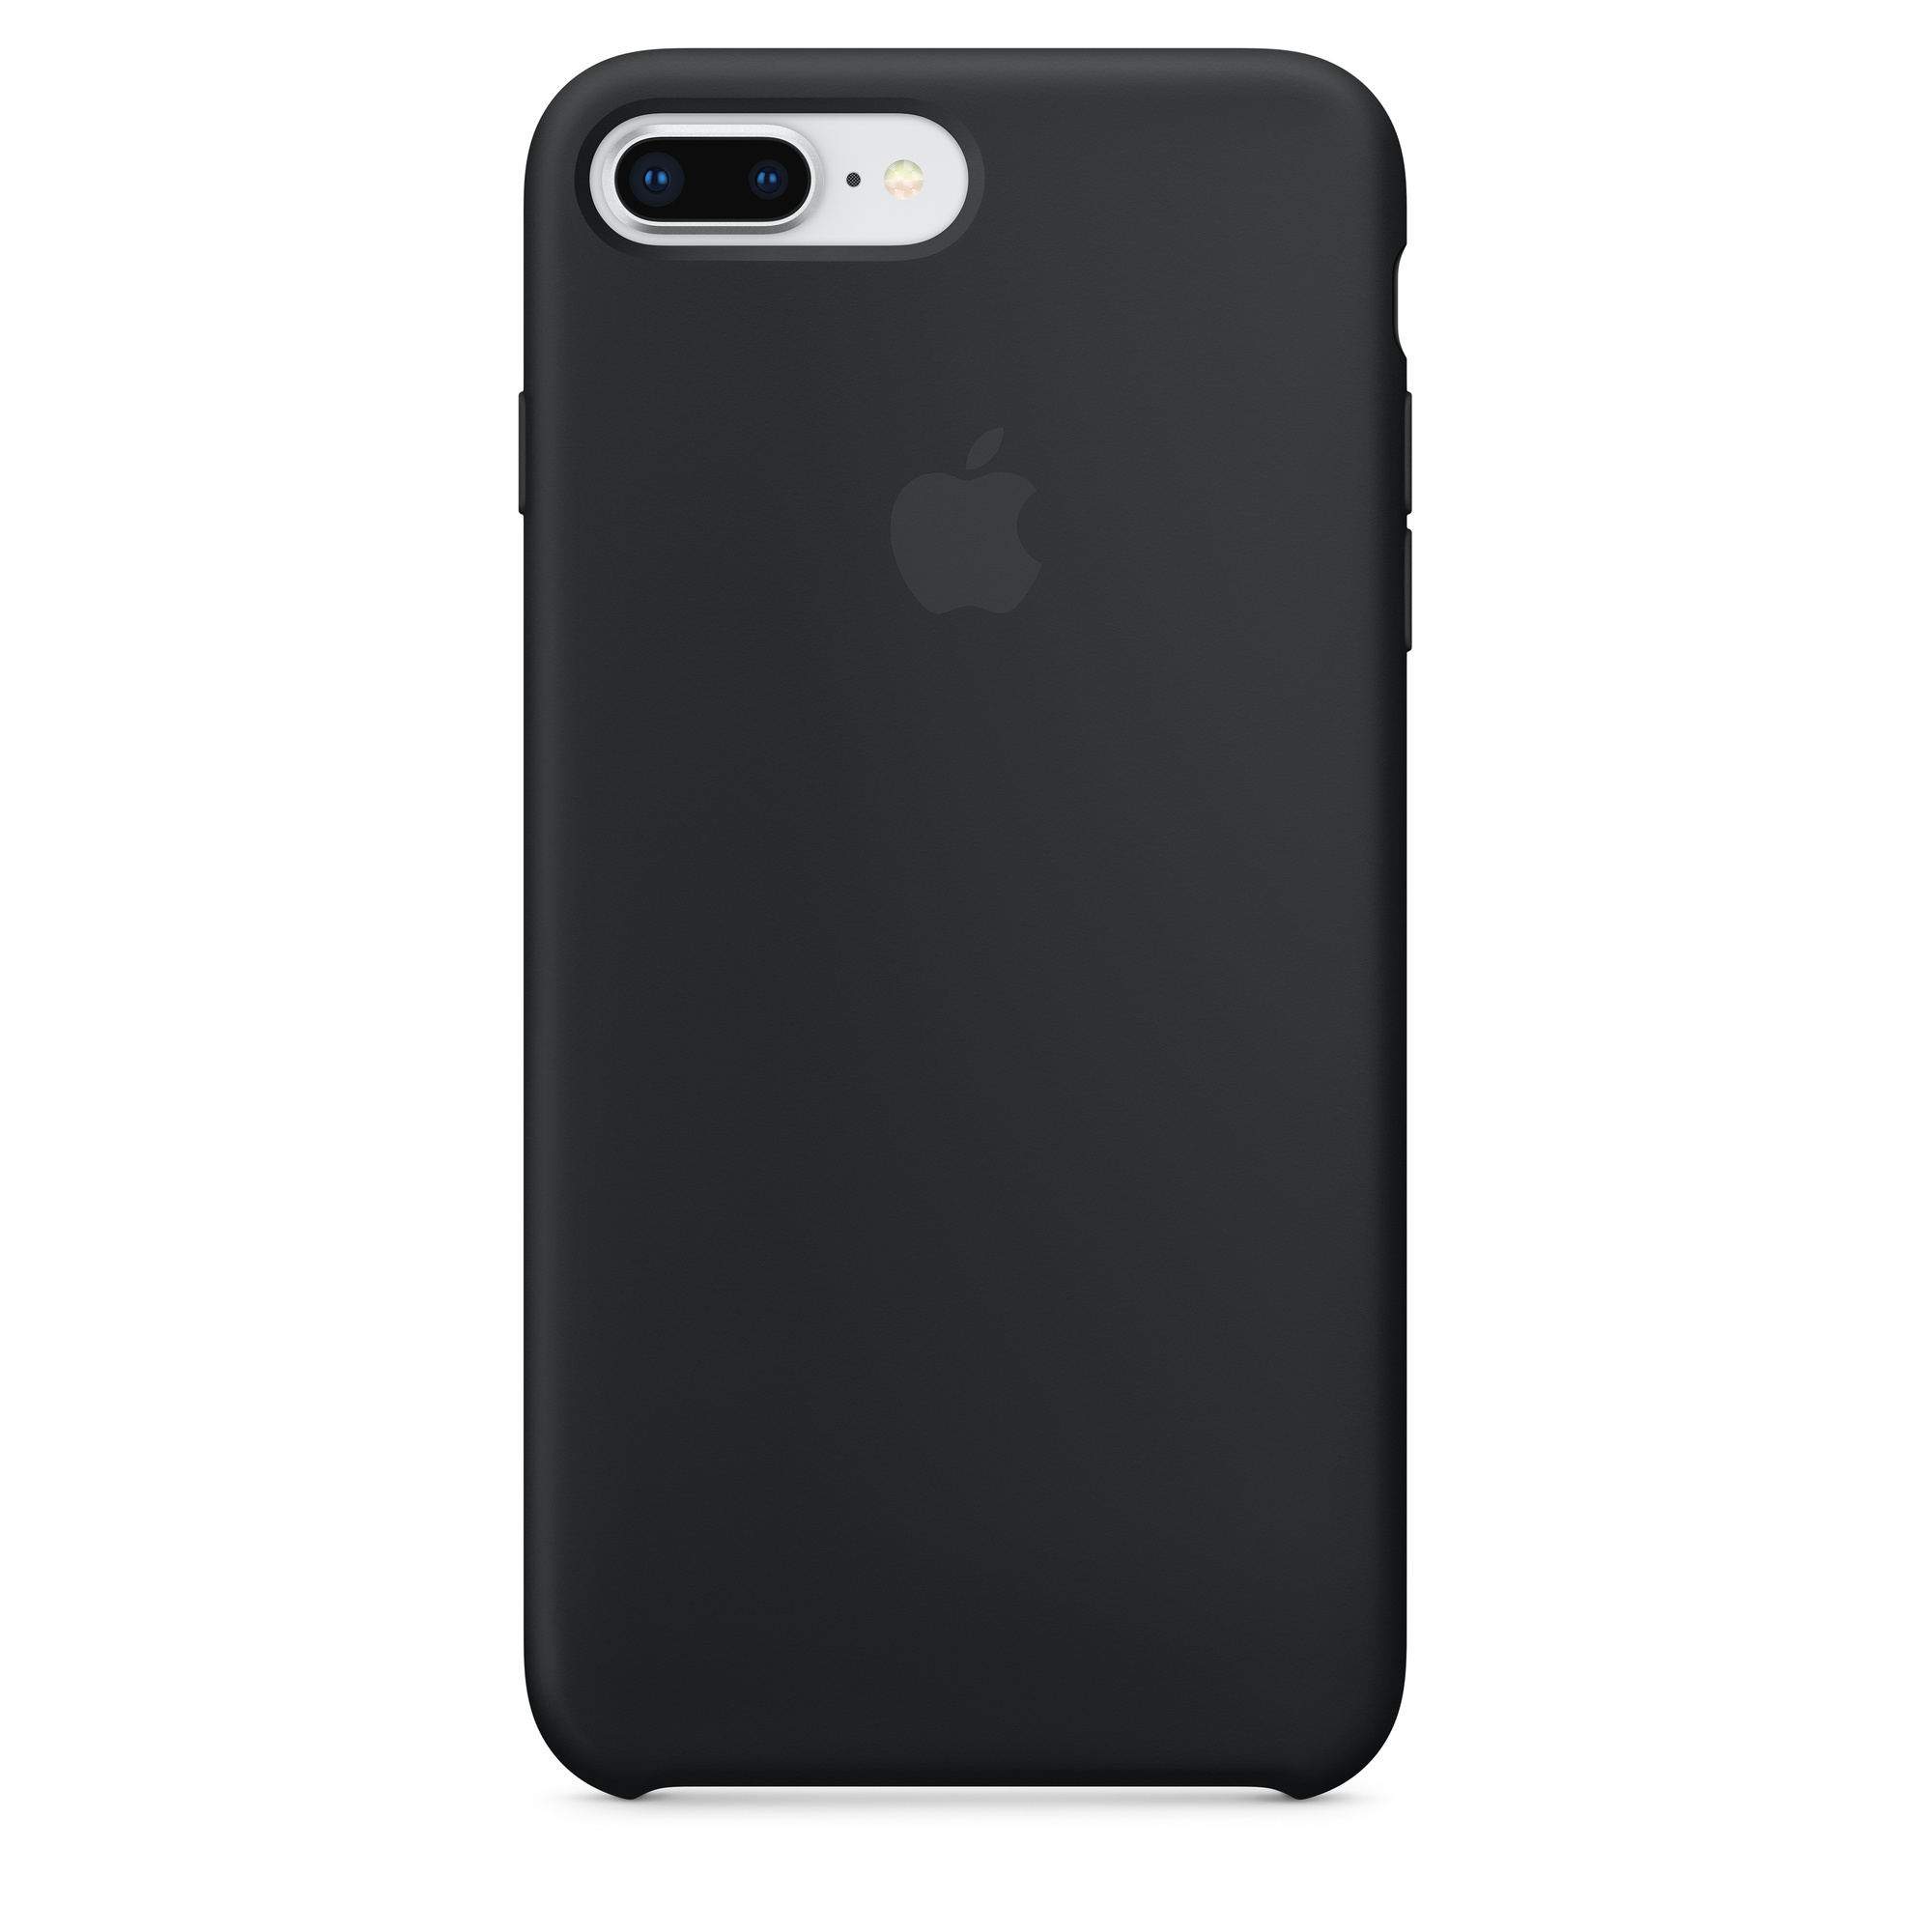 new product 04642 f0cc8 iPhone 8 Plus / 7 Plus Silicone Case - Black